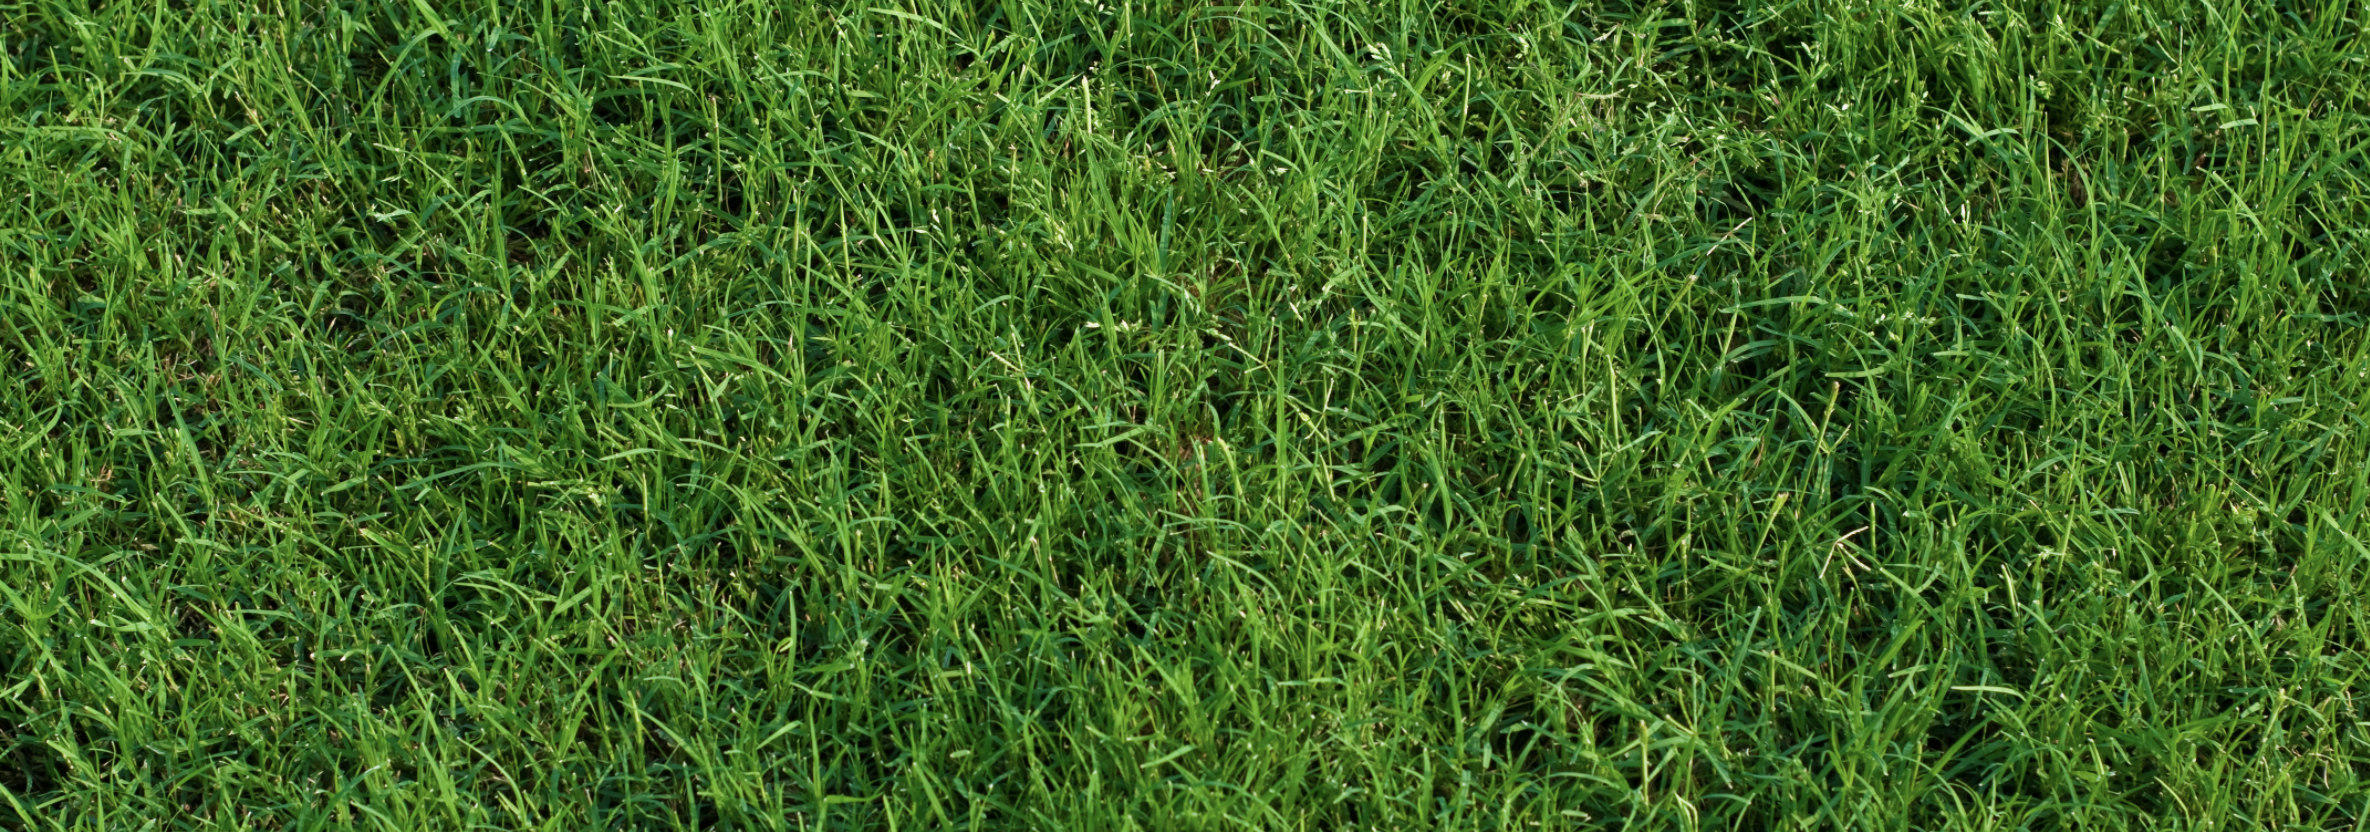 Lawns in Georgia: Selection and Species